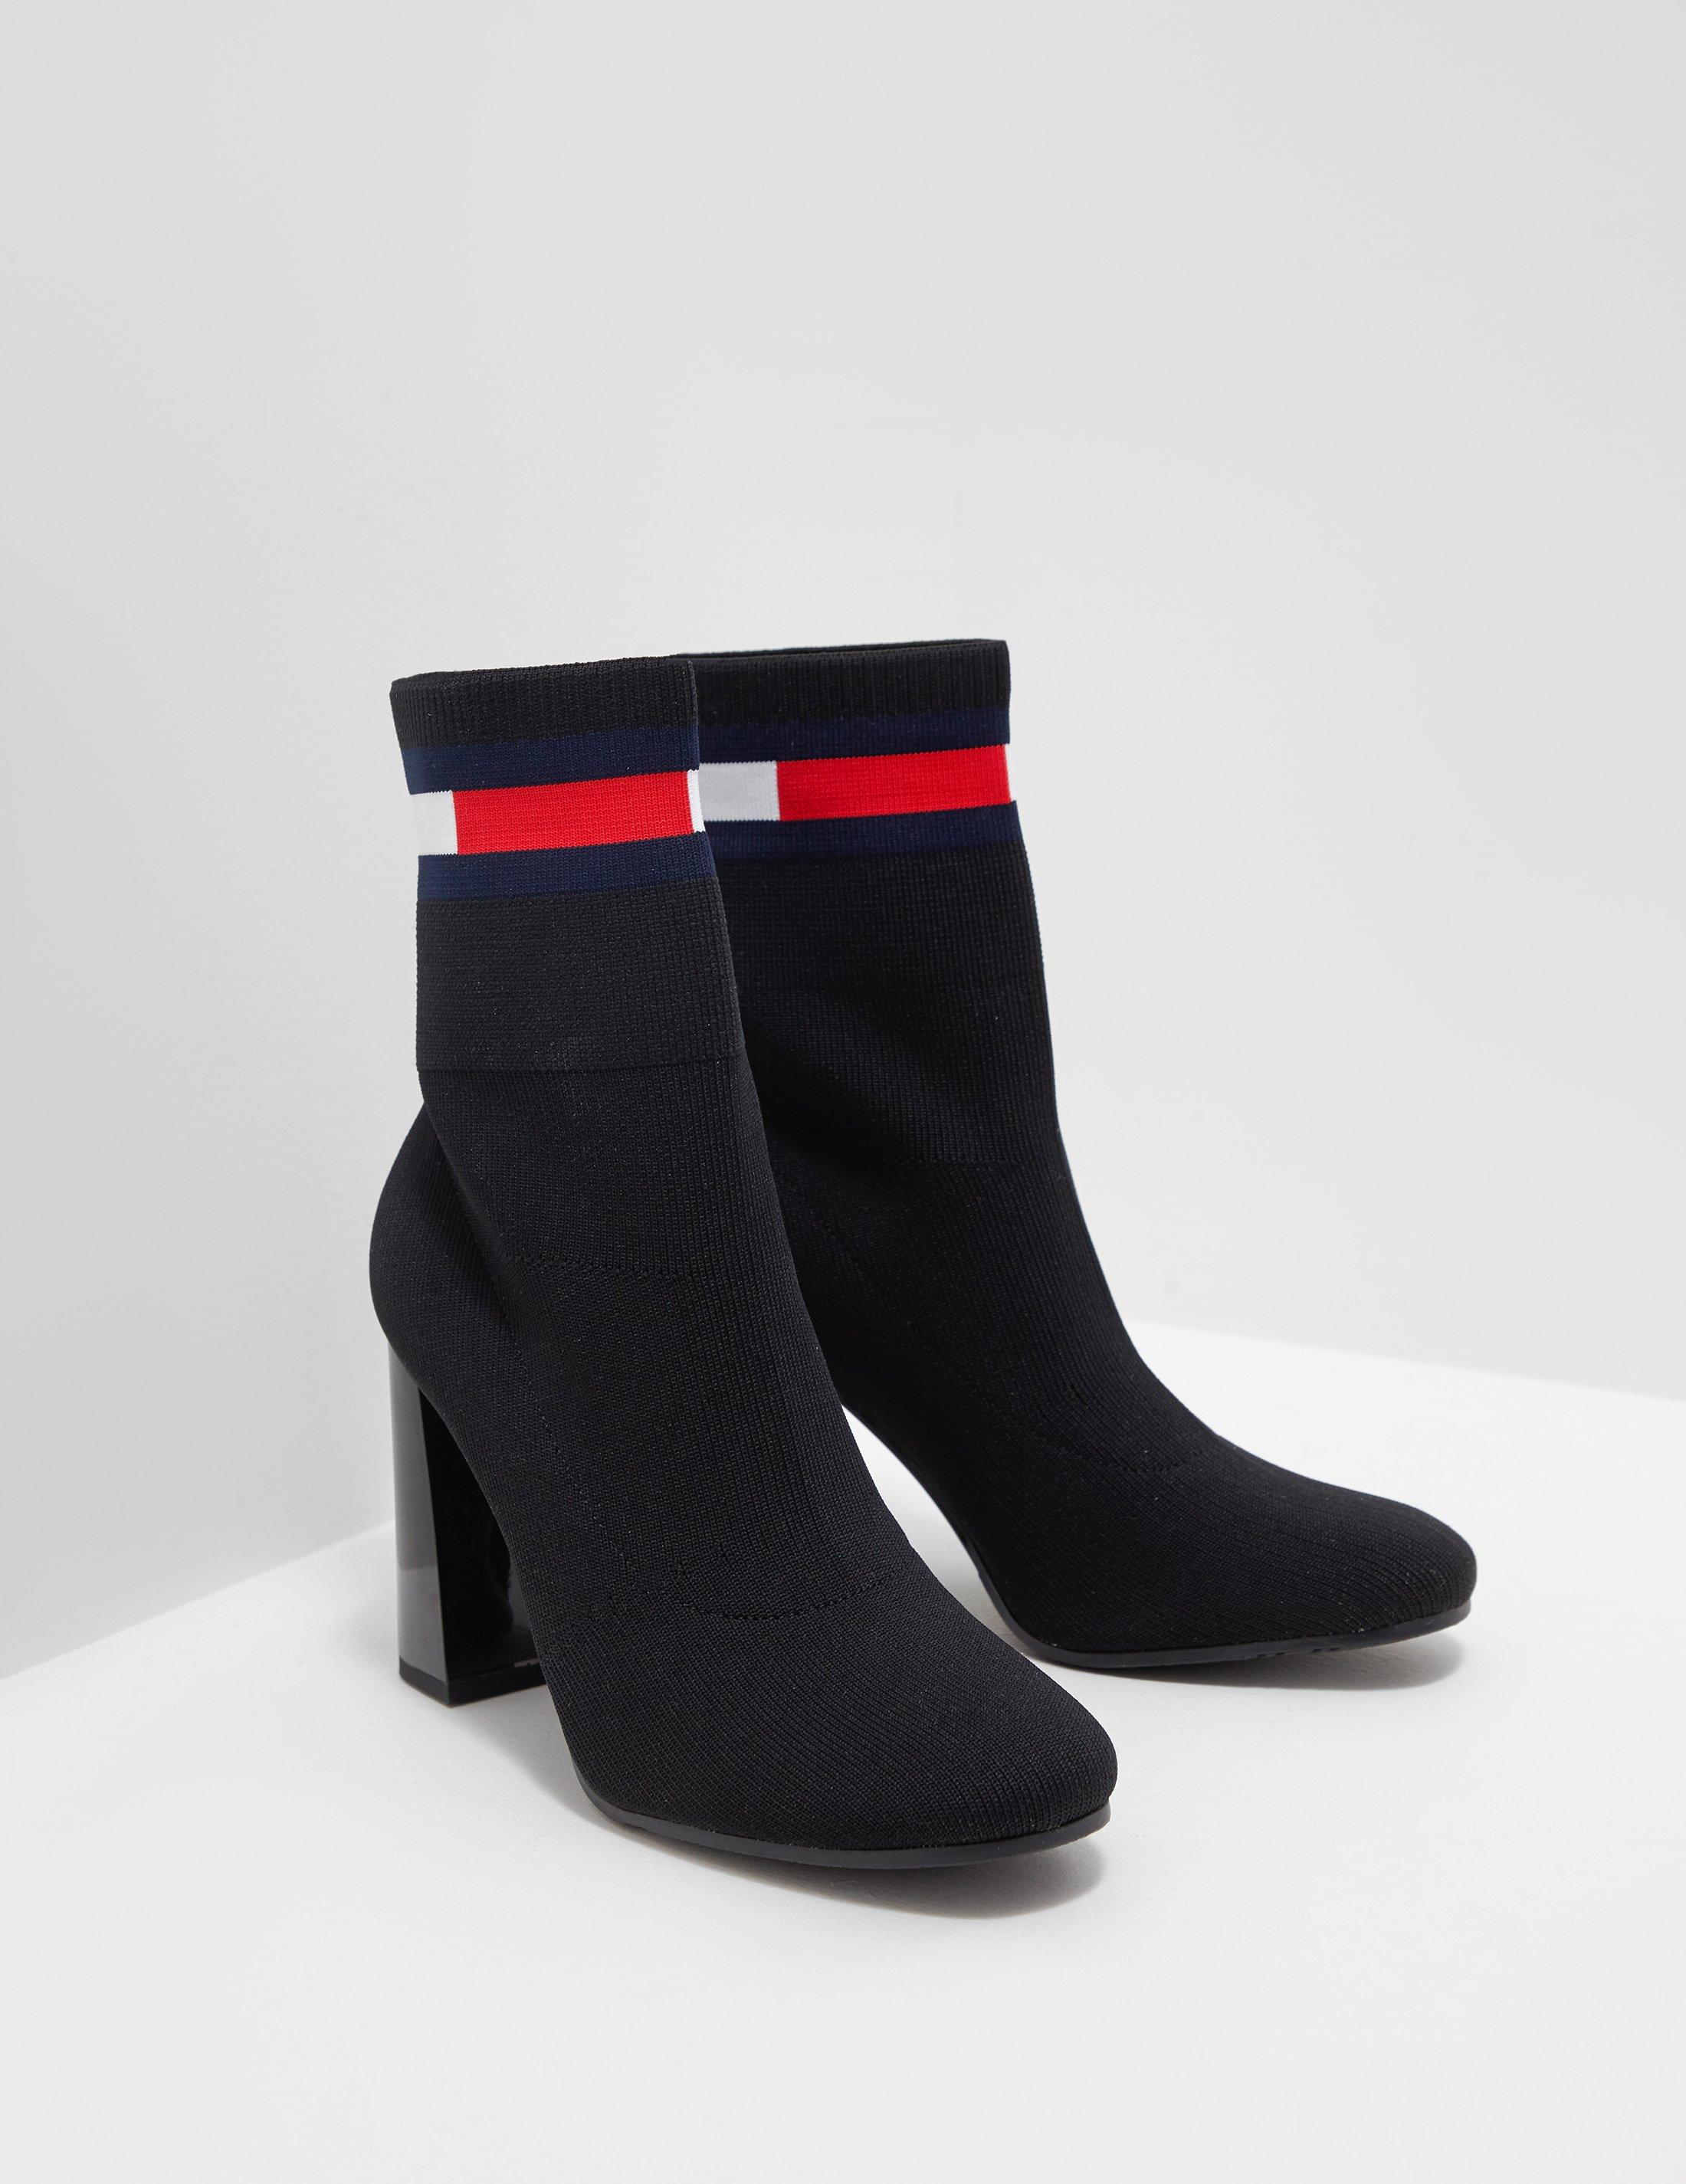 5a1ebd857 Tommy Hilfiger Womens Sock Heeled Boots Black in Black - Lyst